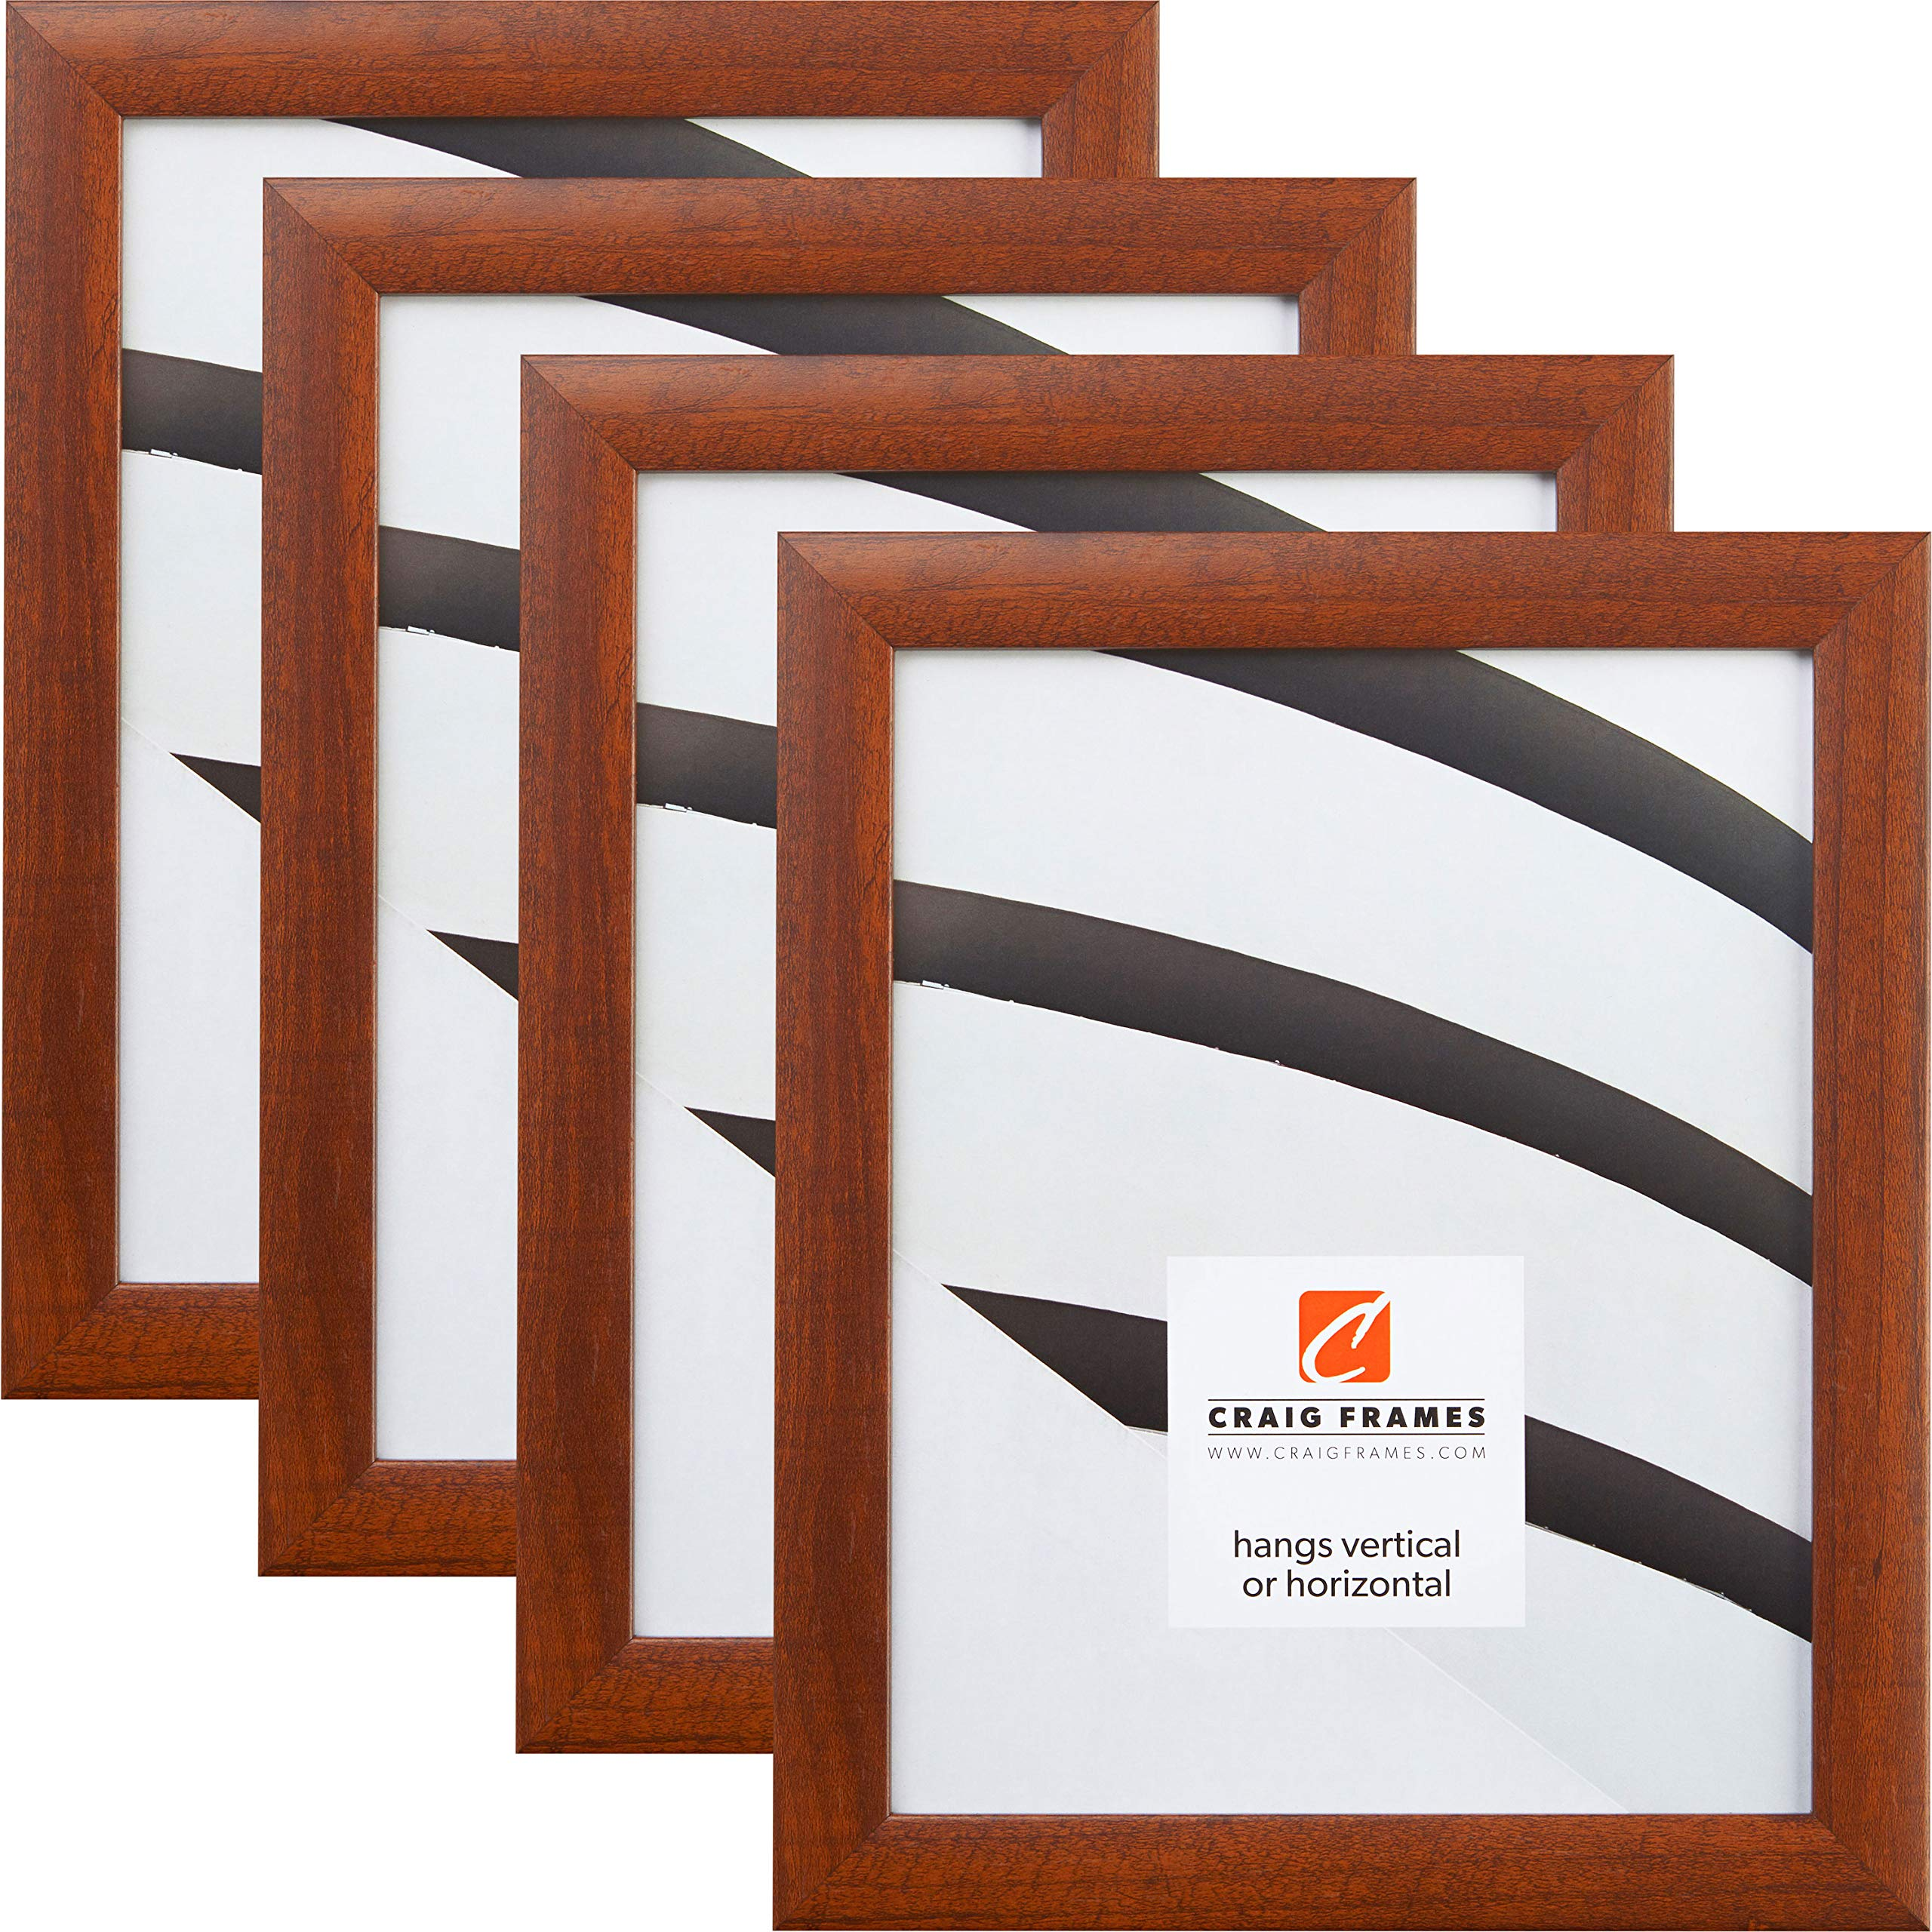 Craig Frames 23247616 8 x 10 Inch Picture Frame, Walnut Brown, Set of 4 by Craig Frames